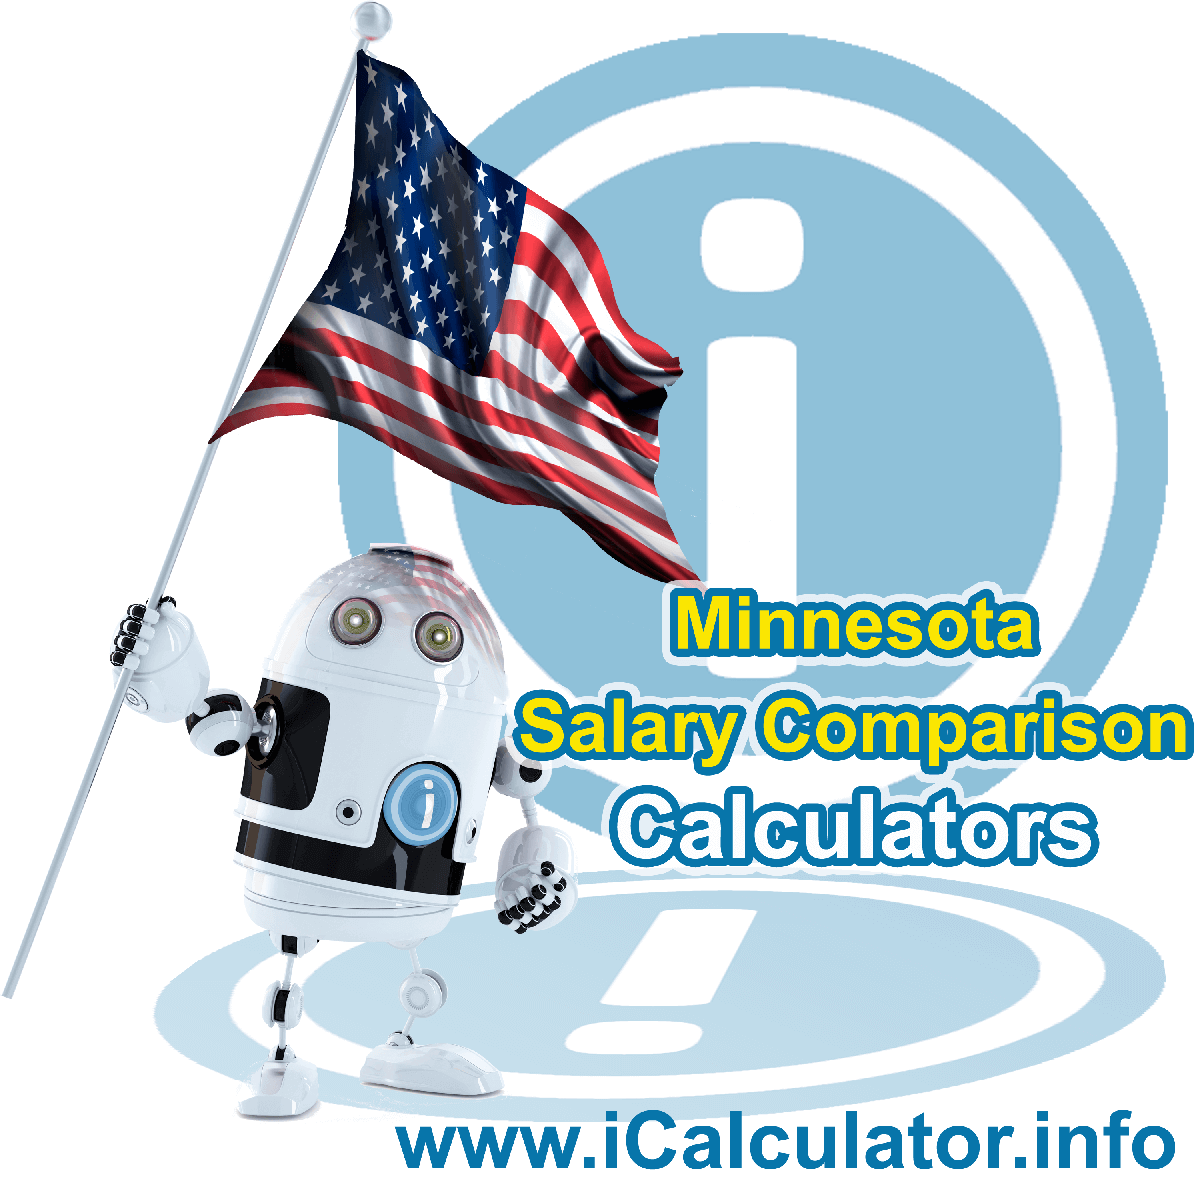 Minnesota Salary Comparison Calculator 2020 | iCalculator | The Minnesota Salary Comparison Calculator allows you to quickly calculate and compare upto 6 salaries in Minnesota or between other states for the 2020 tax year and historical tax years. Its an excellent tool for jobseekers, pay raise comparison and comparison of salaries between different US States